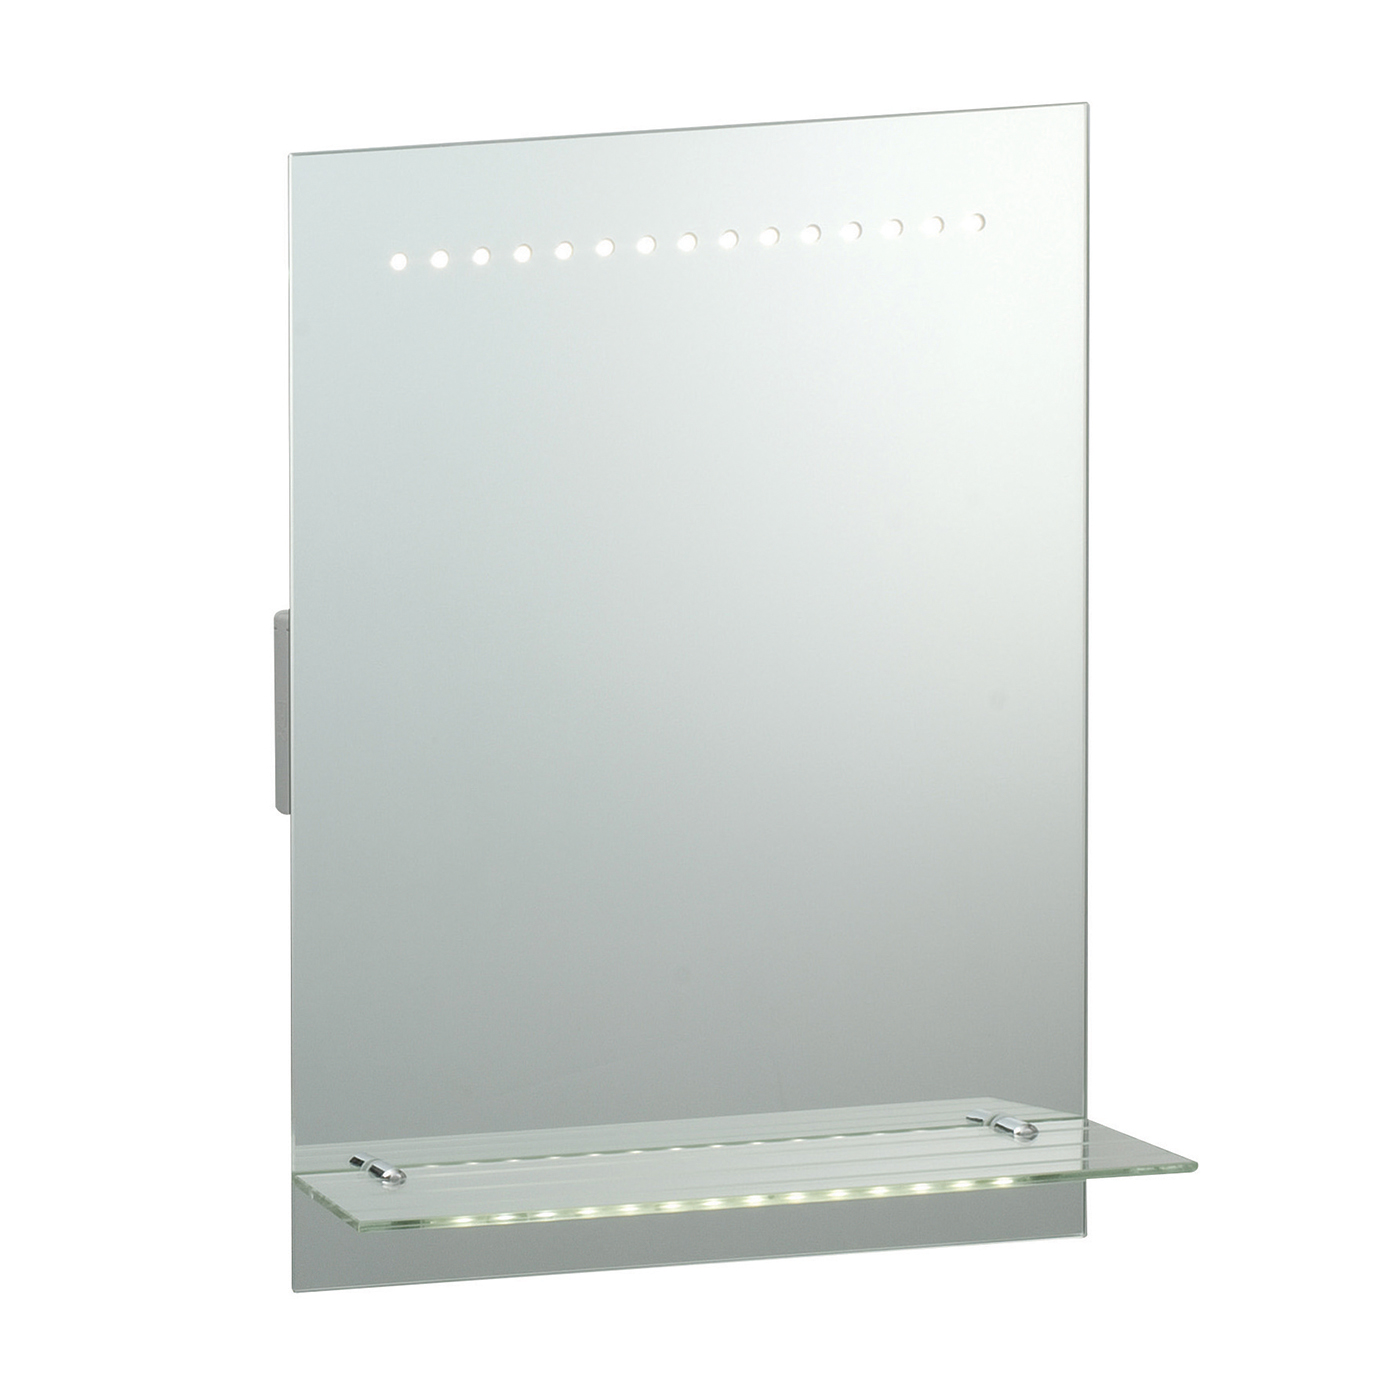 Endon Omega LED shaver bathroom mirror IP44 1W sensor H: 500mm W: 390mm